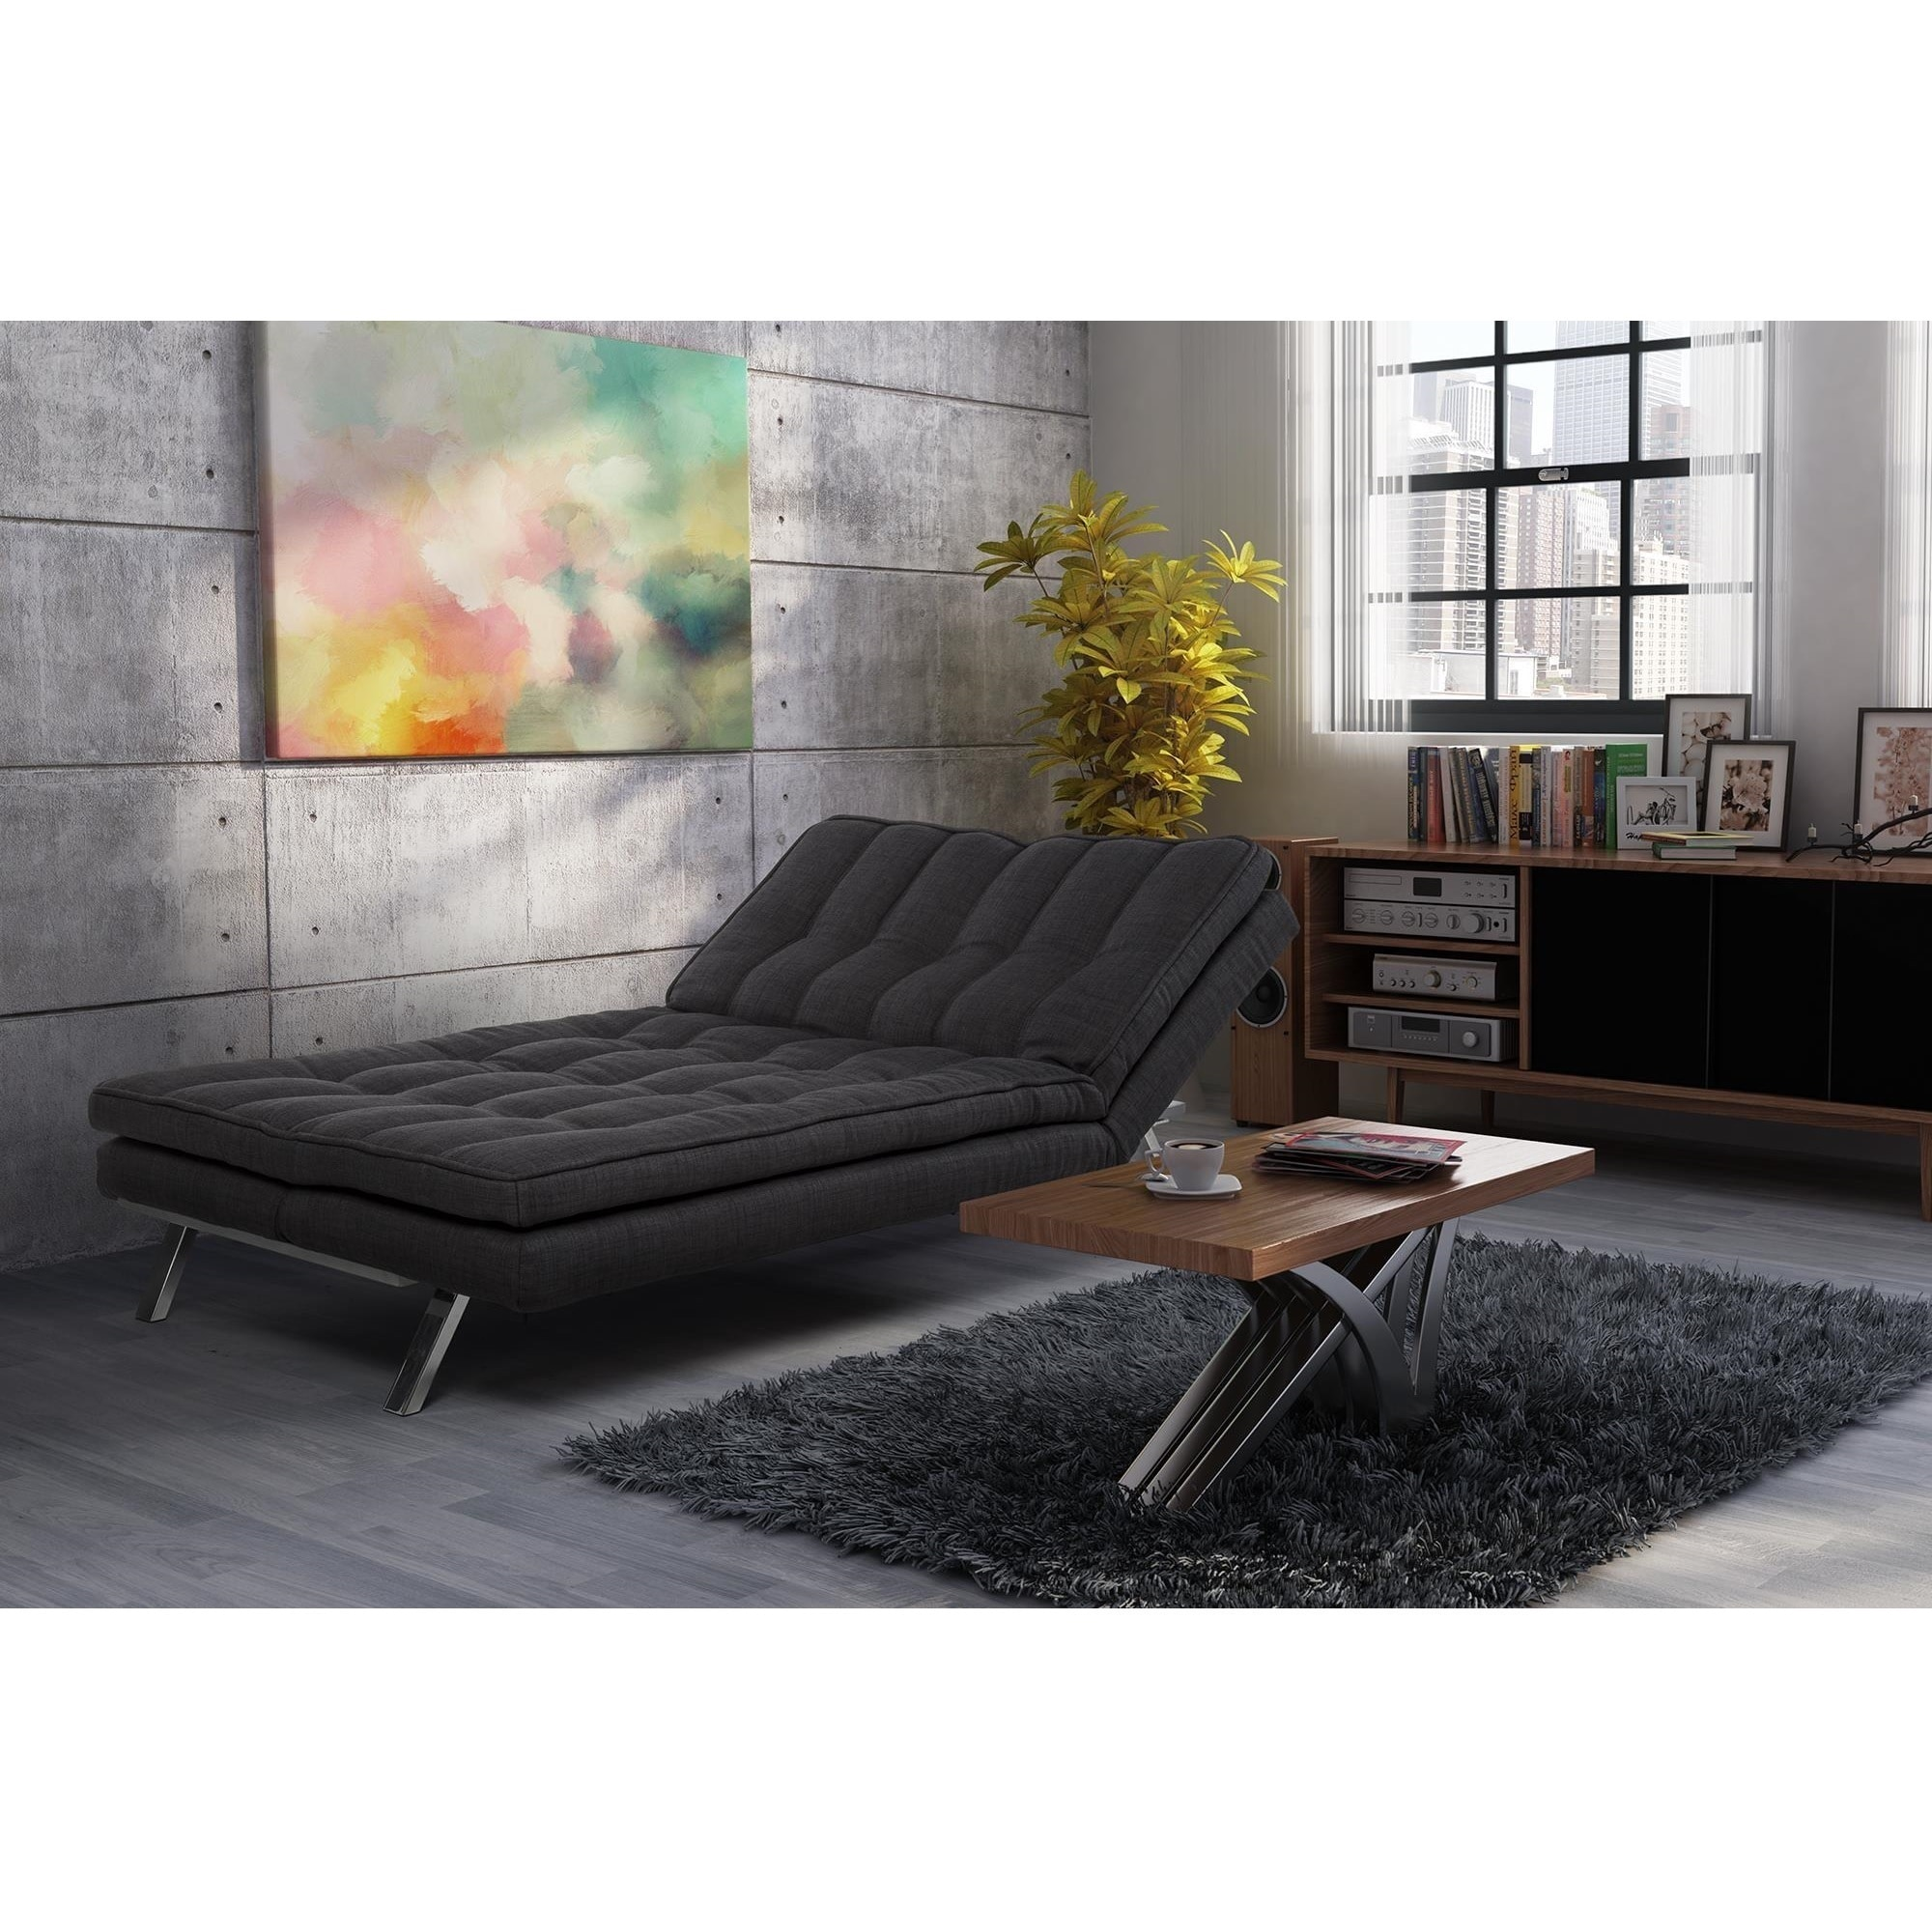 Dhp Madison Premium 3 In 1 Convertible Futon Lounger Free Shipping Today Com 9928883